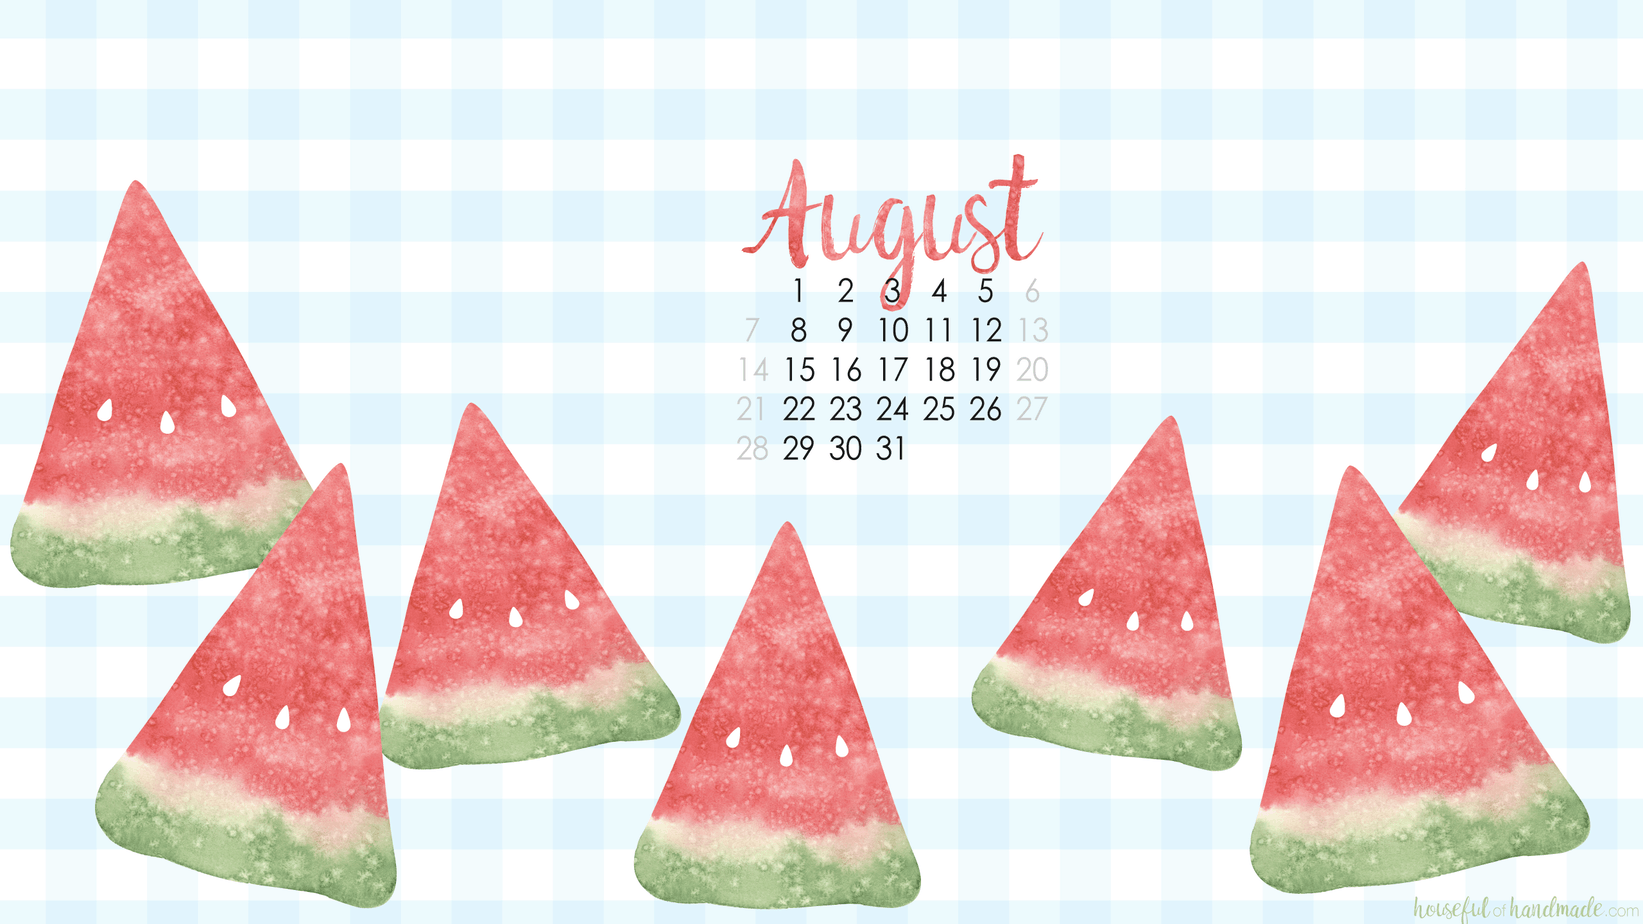 Free Digital Backgrounds For August Houseful Of Handmade